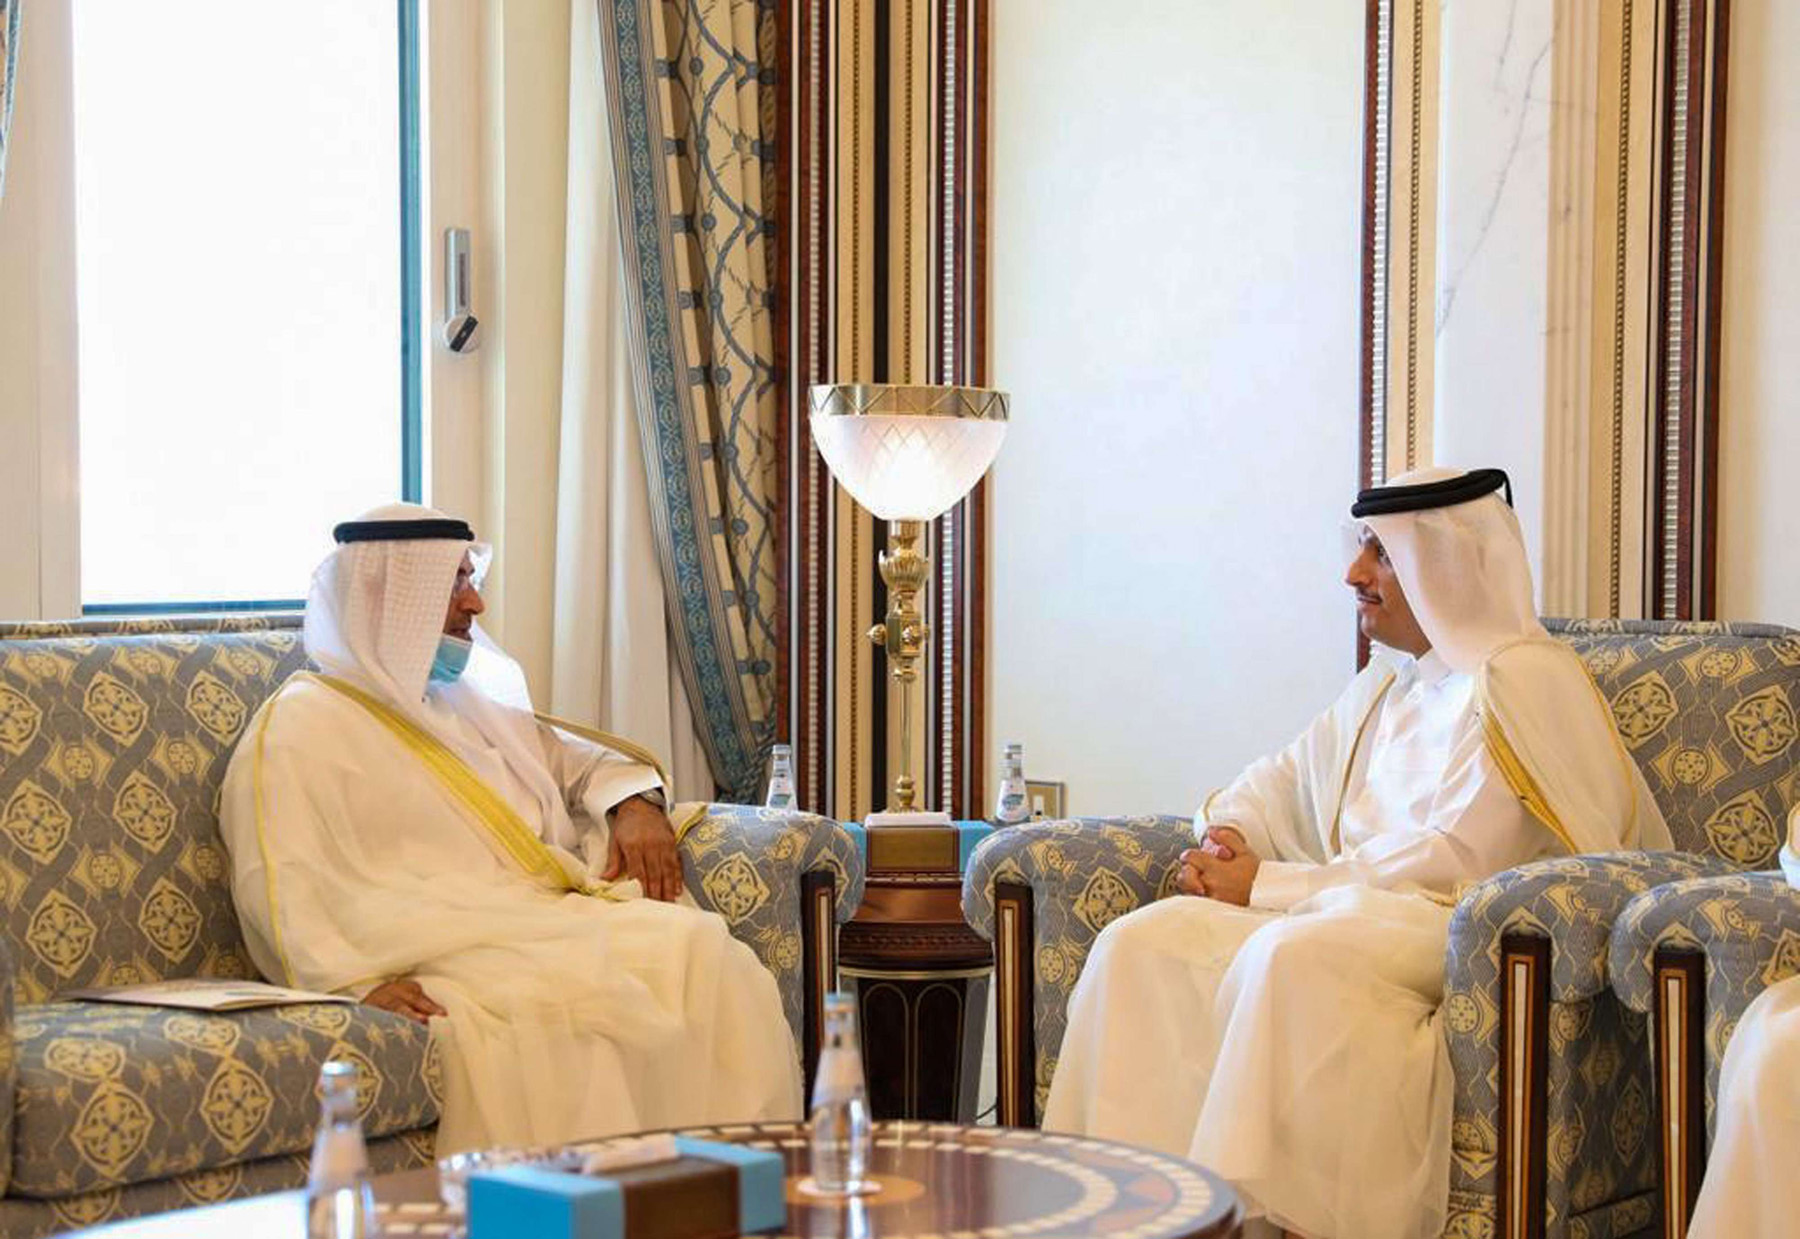 Qatari Deputy Prime Minister Mohammed bin Abdulrahman al-Thani (R) meeting with Gulf Cooperation Council (GCC) Secretary-General Abdullatif bin Rashid al-Zayani in the Qatari capital Doha, on September 21, 2020. (AFP)